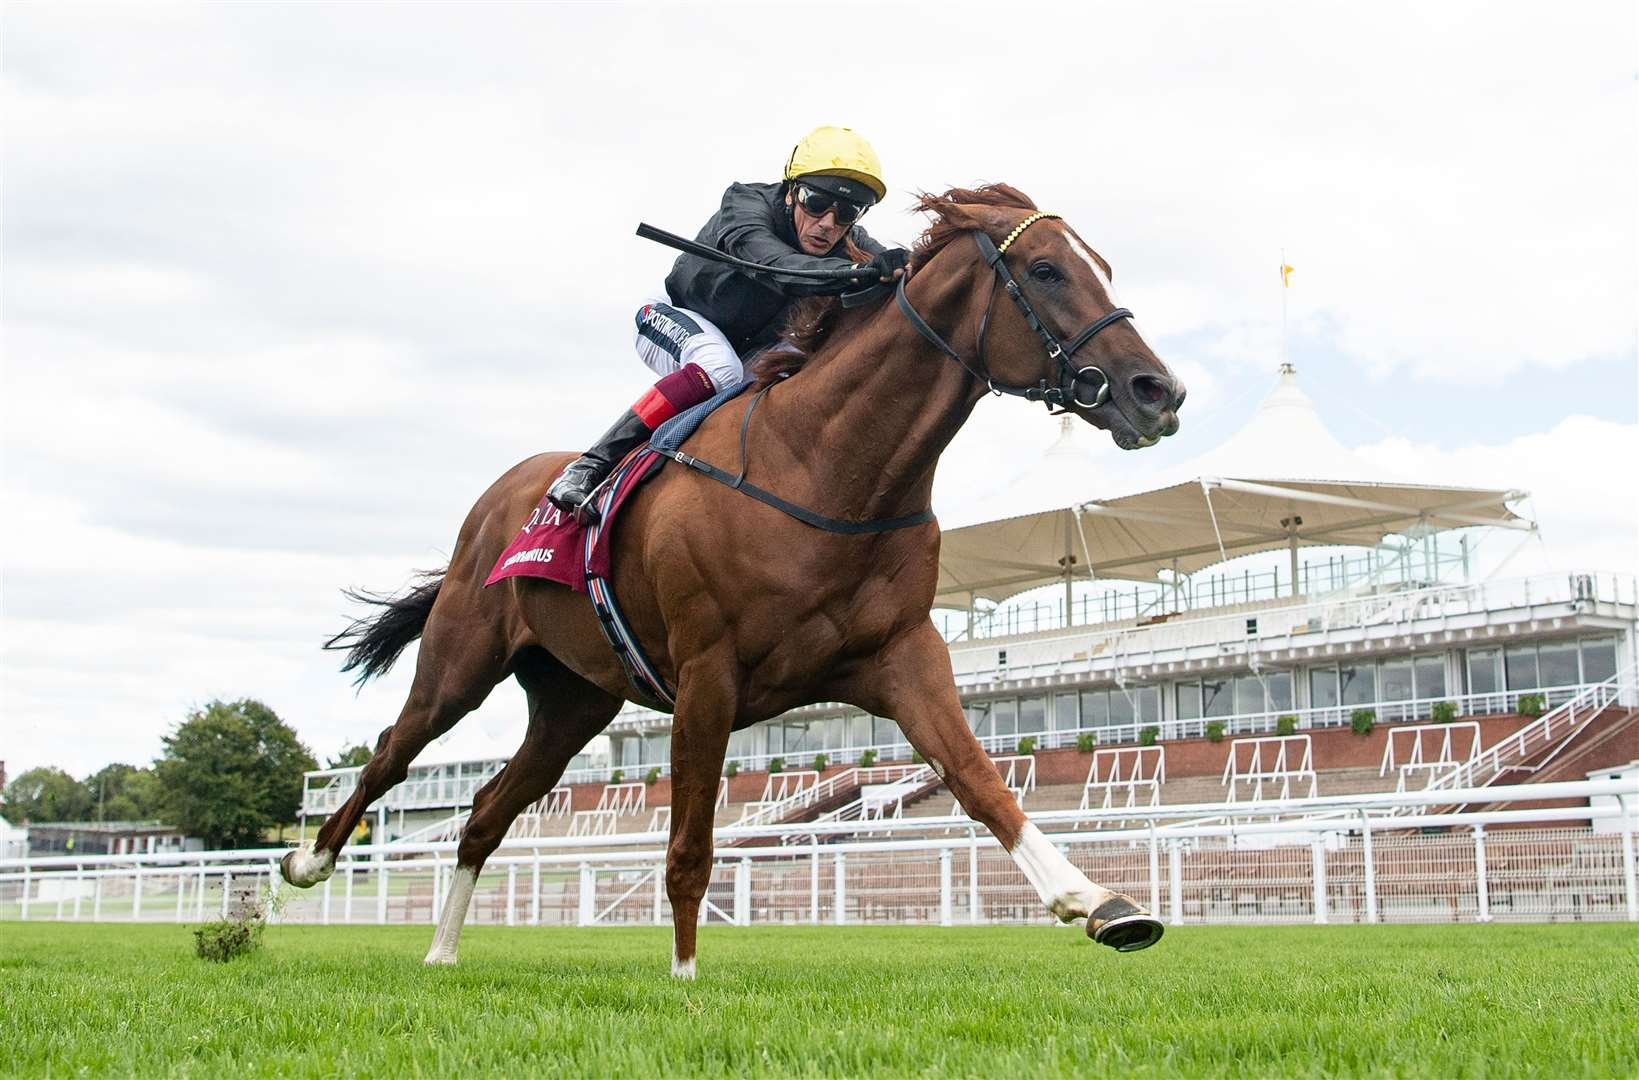 Stradivarius ( Frankie Dettori) wins the Al Shaqab Goodwood Cup for a historic fourth time.Glorious Goodwood28.7.20 Pic: Edward Whitaker/ Racing Post. (39383826)